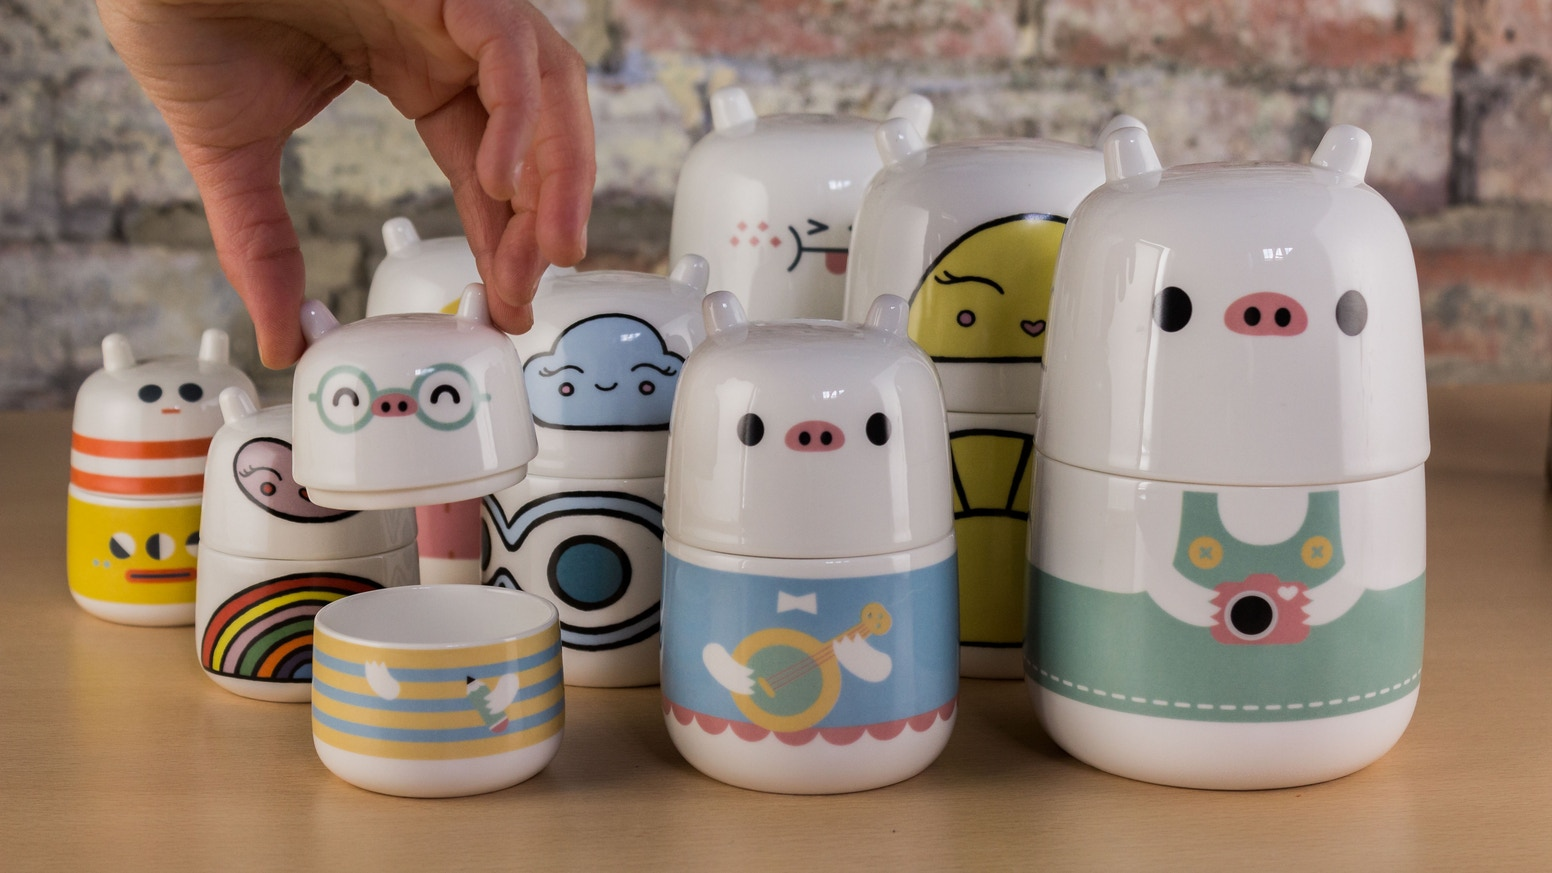 A historic British ceramic manufacturer is bringing my fine china tableware characters to life.